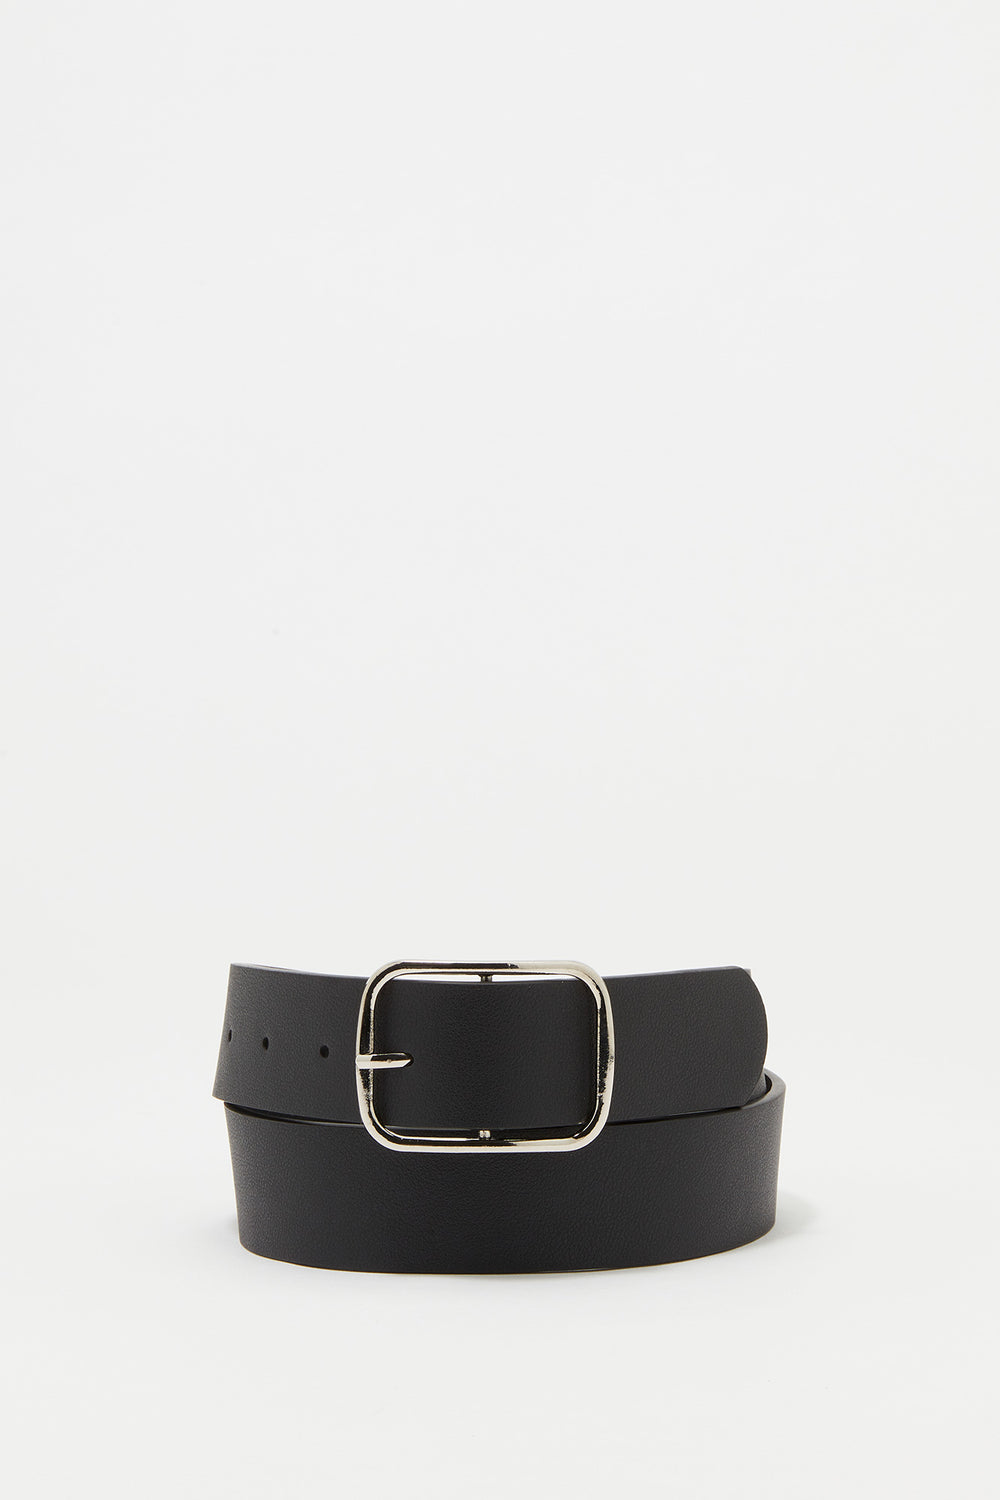 Rectangle Buckle Faux-Leather Belt Solid Black